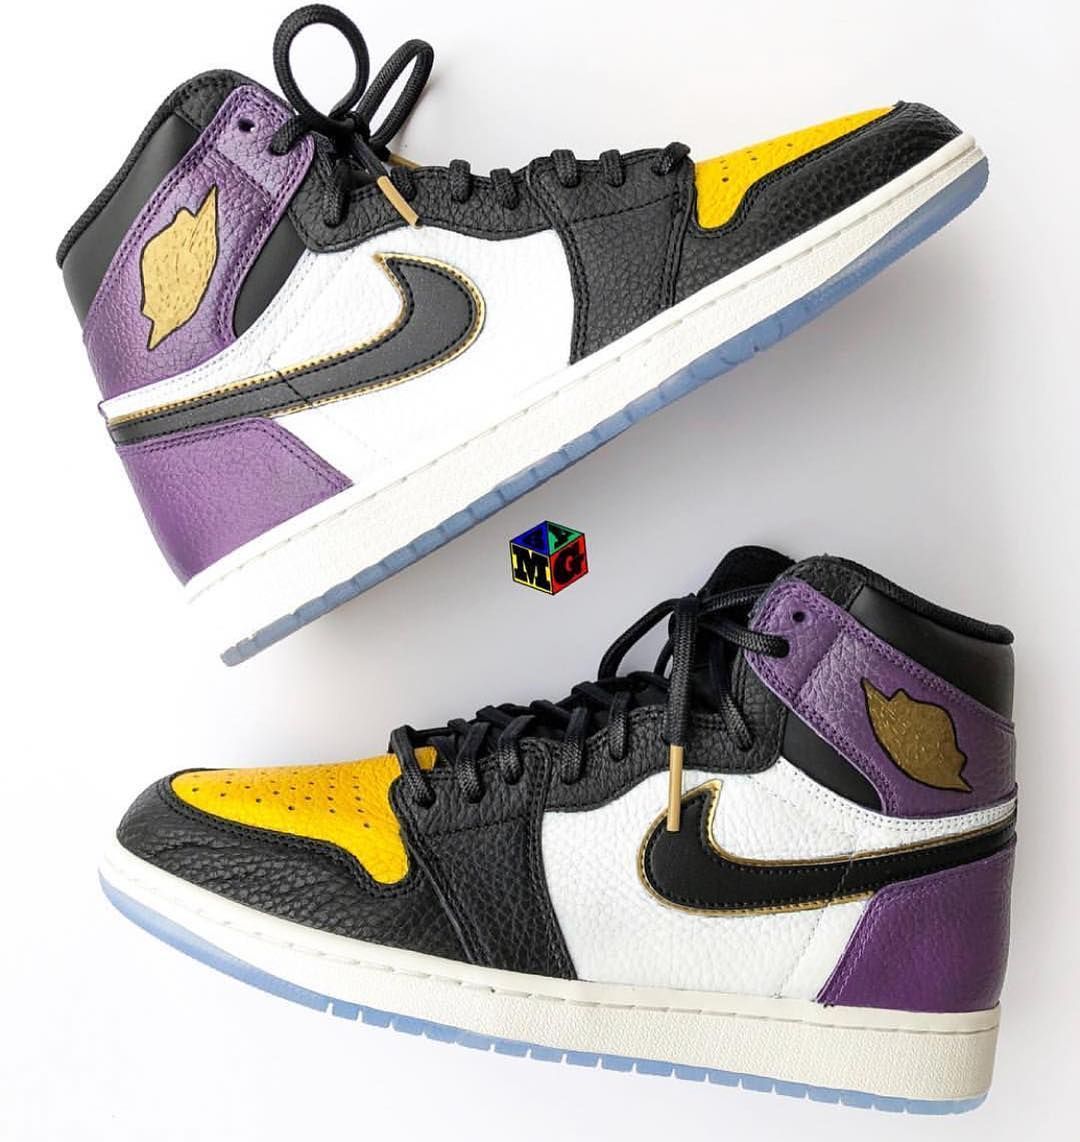 d73ededd1ee Lakers special custom Air Jordan 1